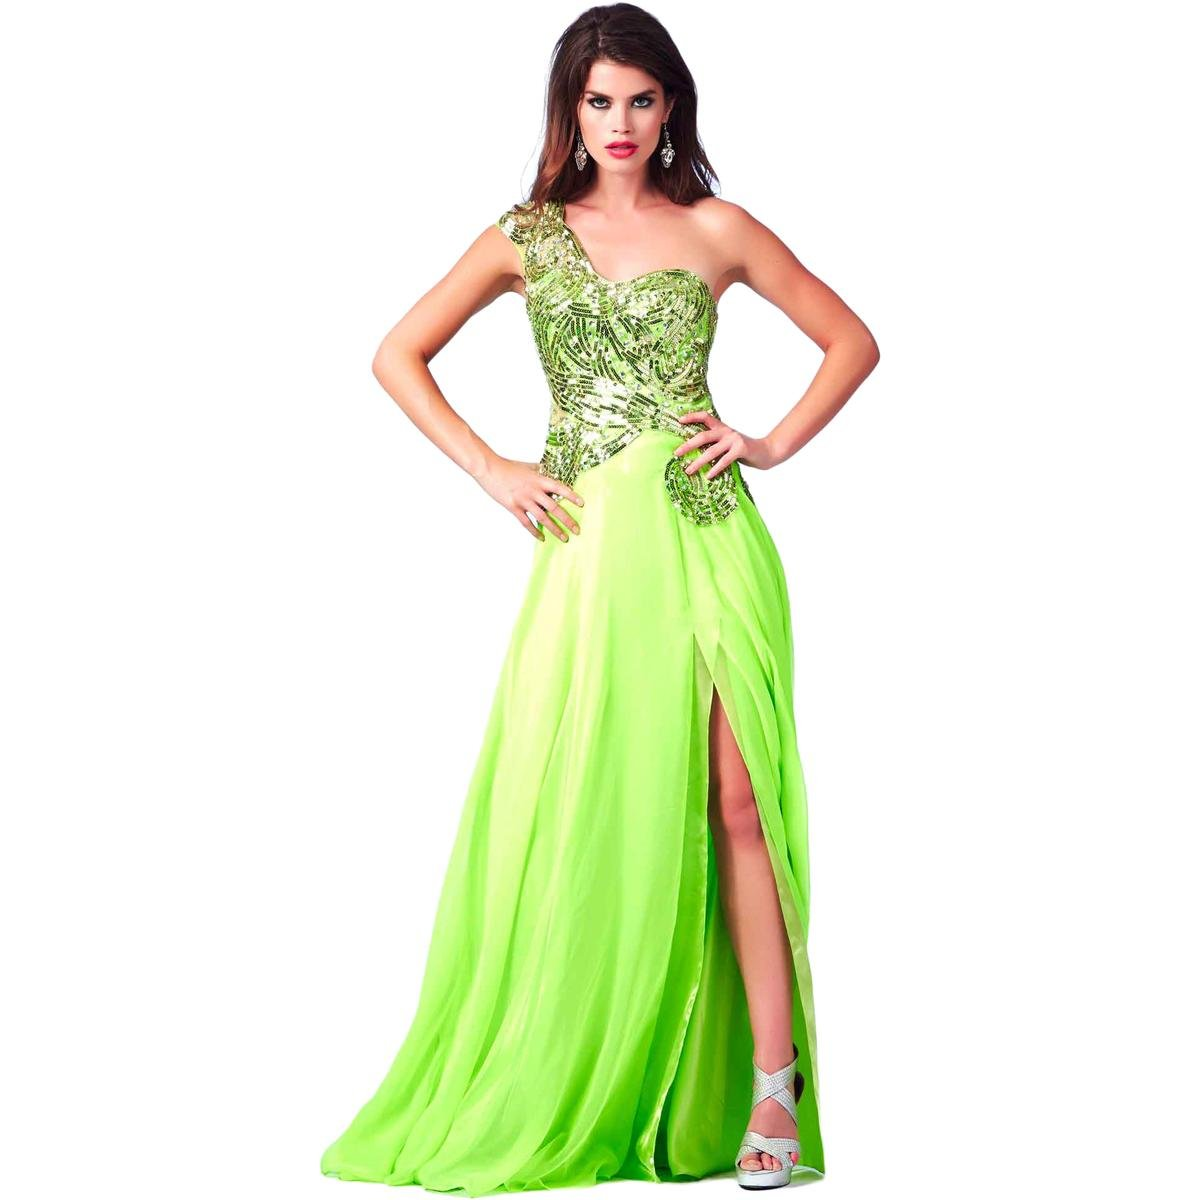 870096afc50 Amazon.com  Cassandra Stone by Mac Duggal Womens Chiffon Embellished Formal  Dress  Clothing